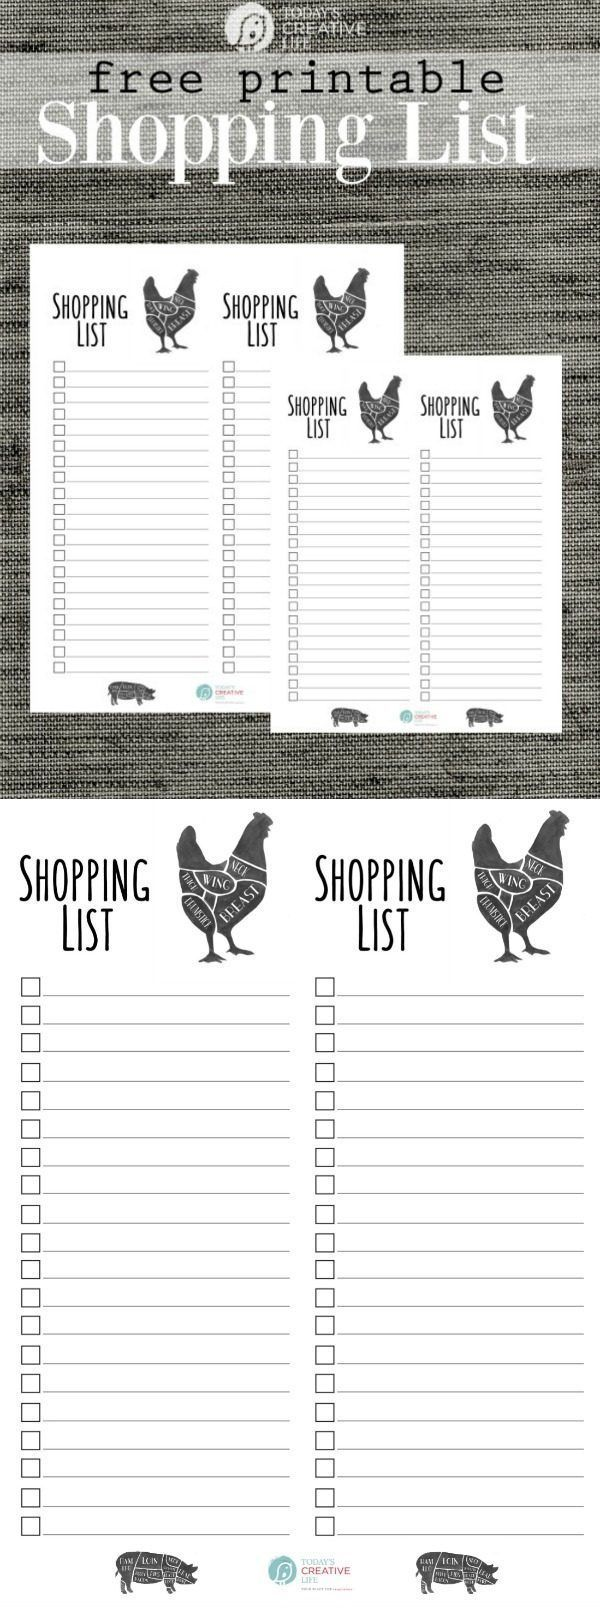 Grocery List Word free printable profit and loss statement – Grocery List Word